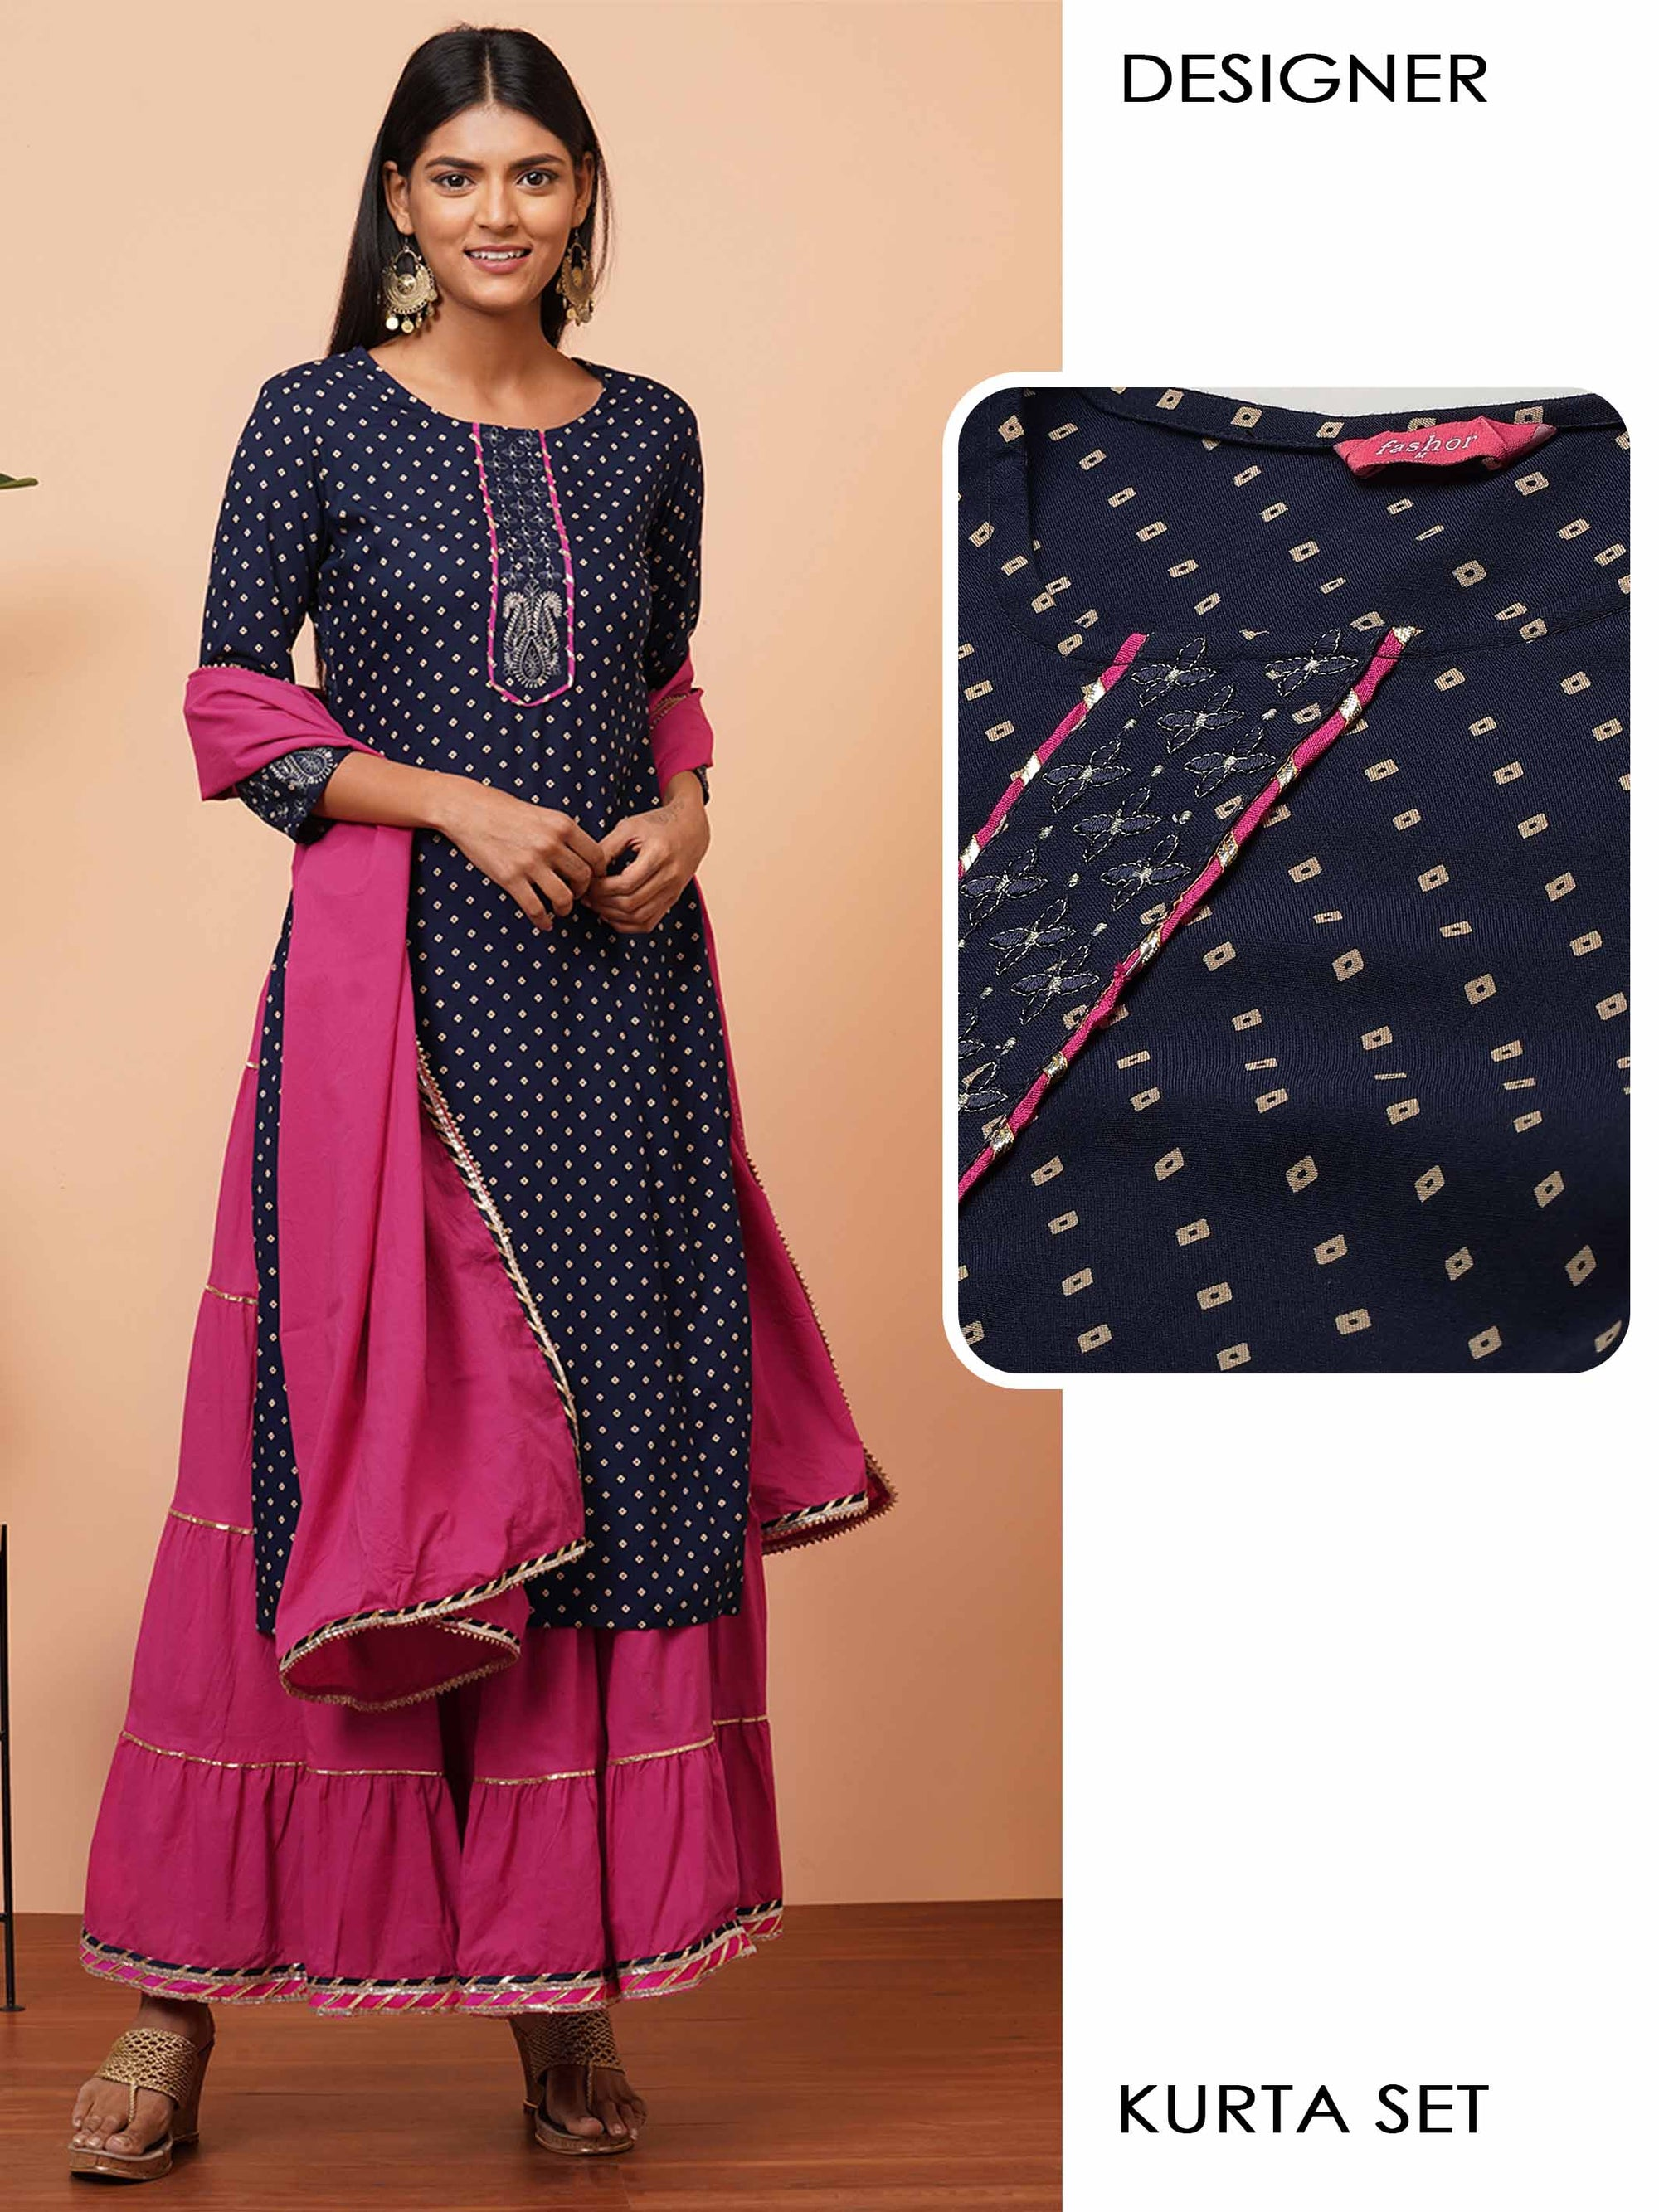 Bandhani Printed Kurta with Solid Tiered Skirt & Solid Dupatta - Navy Blue